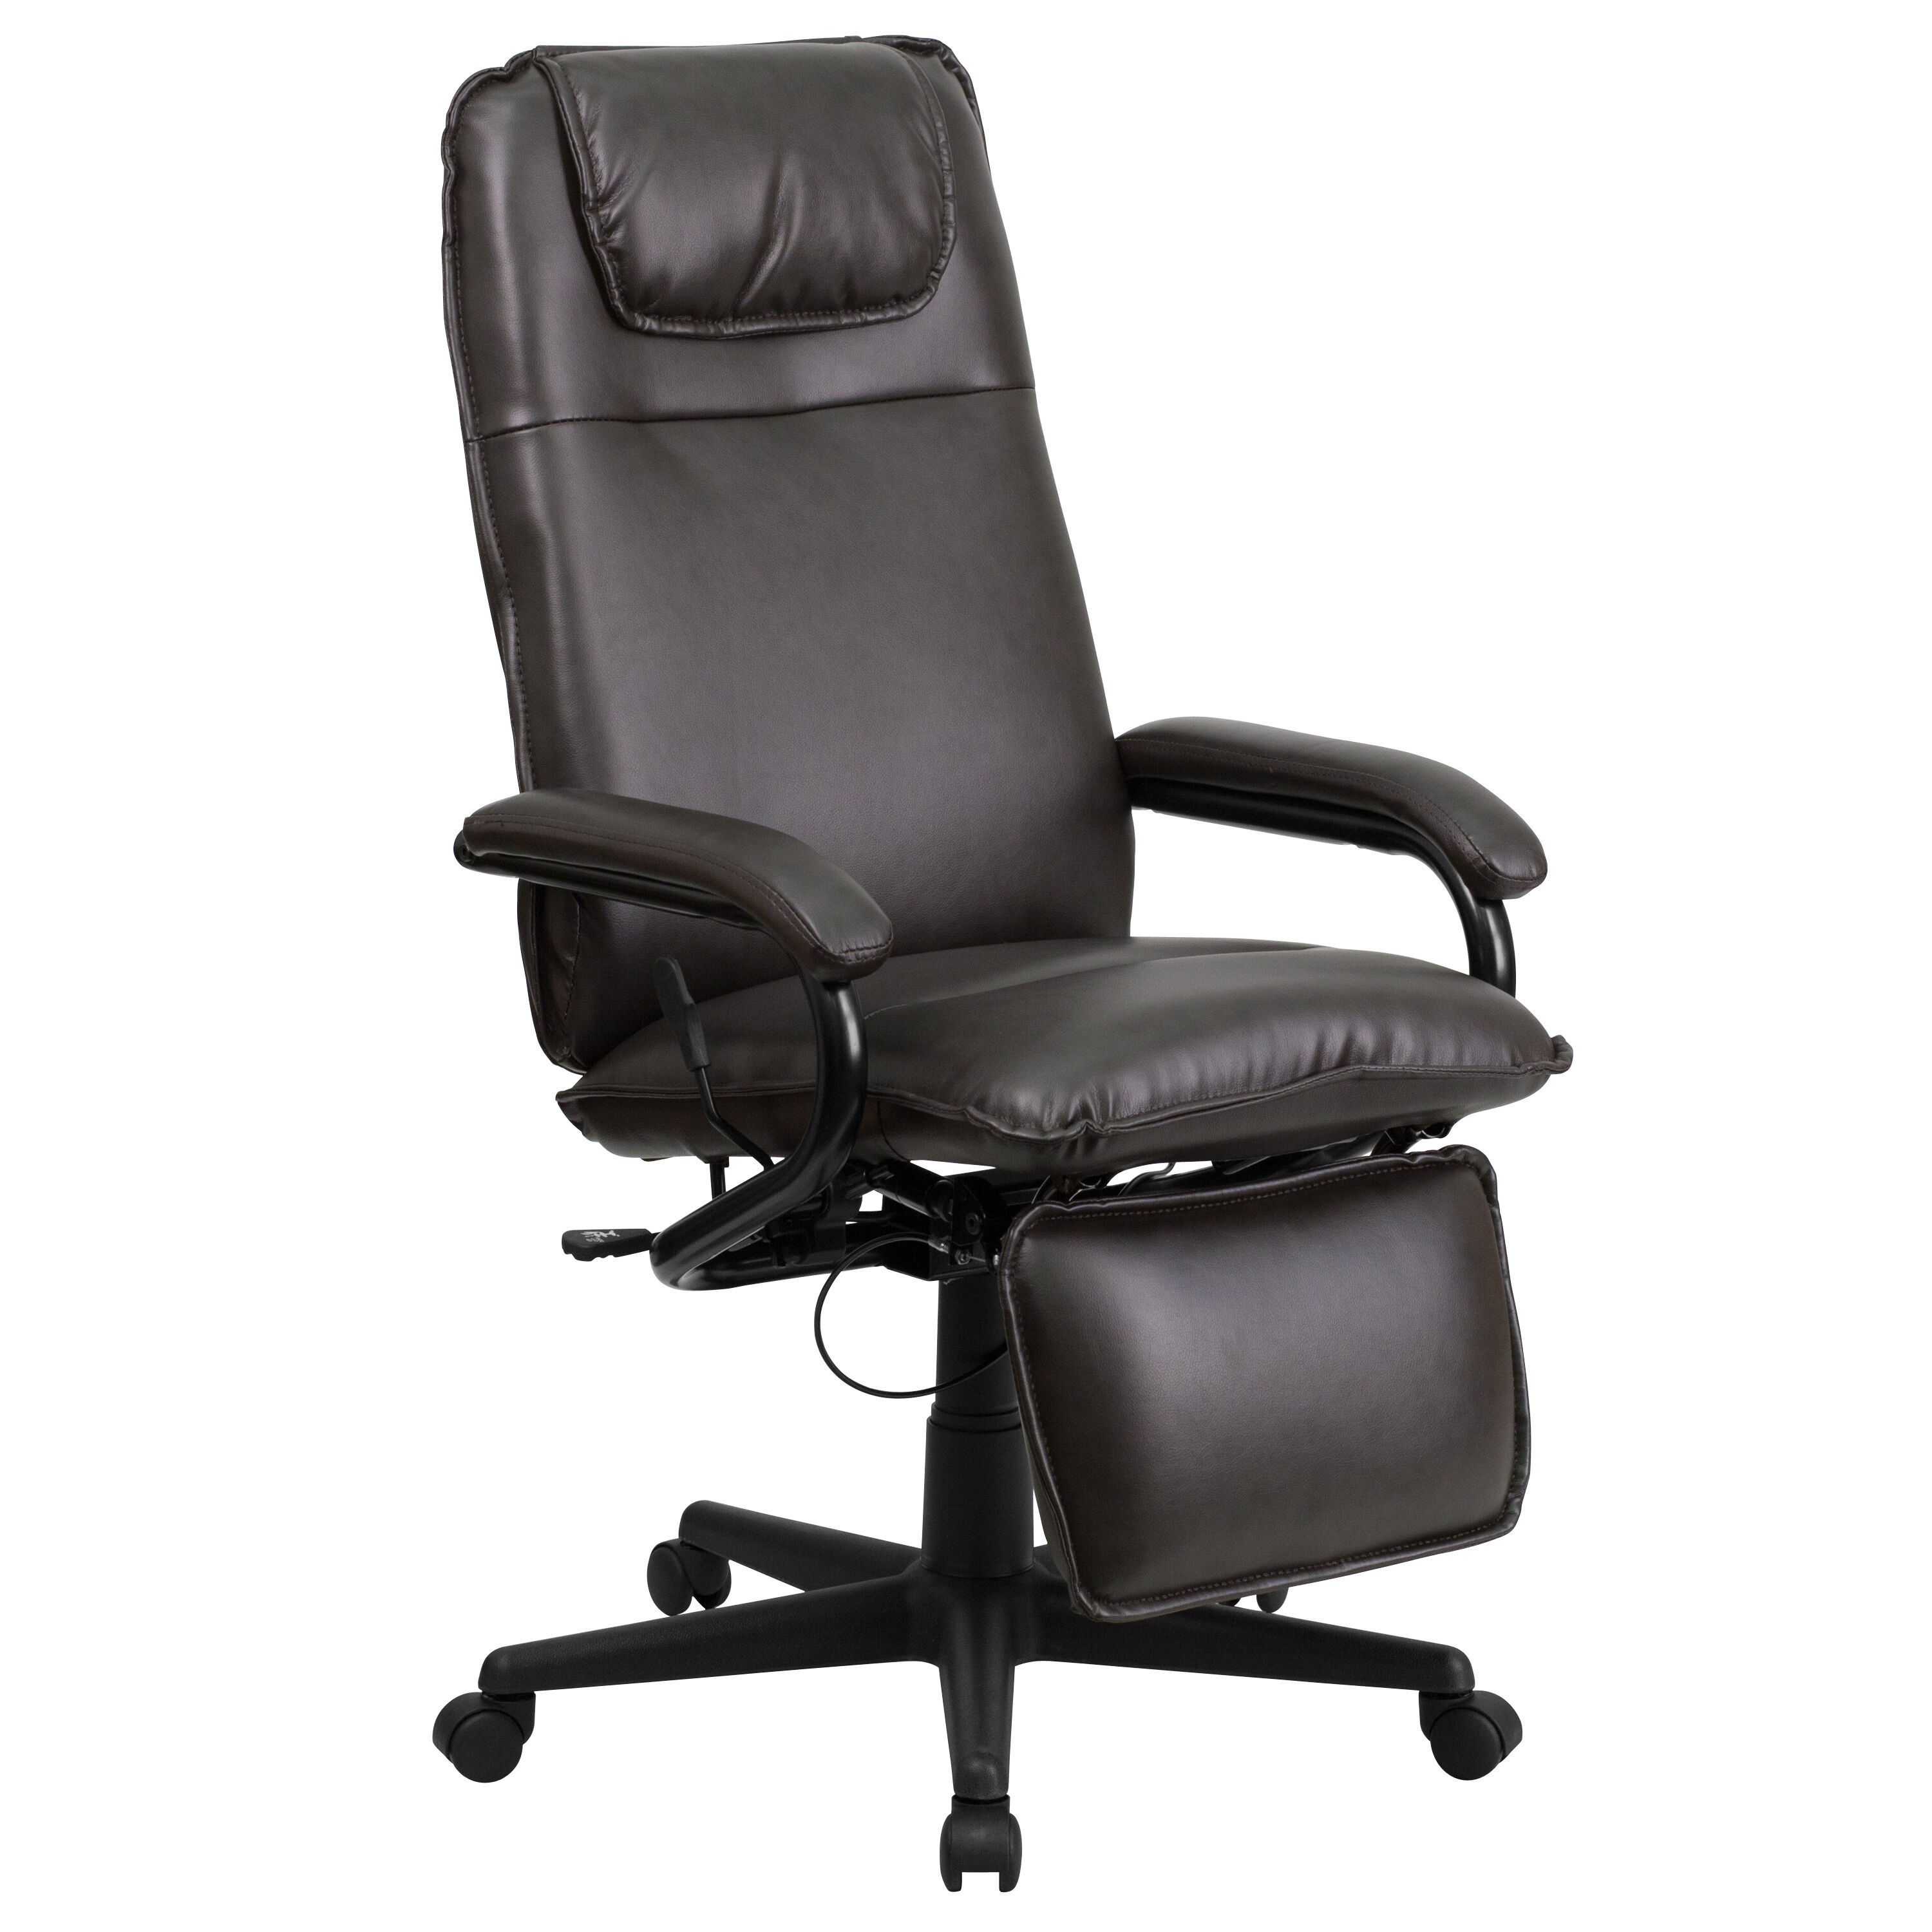 ... Our High Back Brown Leather Executive Reclining Swivel Chair With Arms  Is On Sale Now.